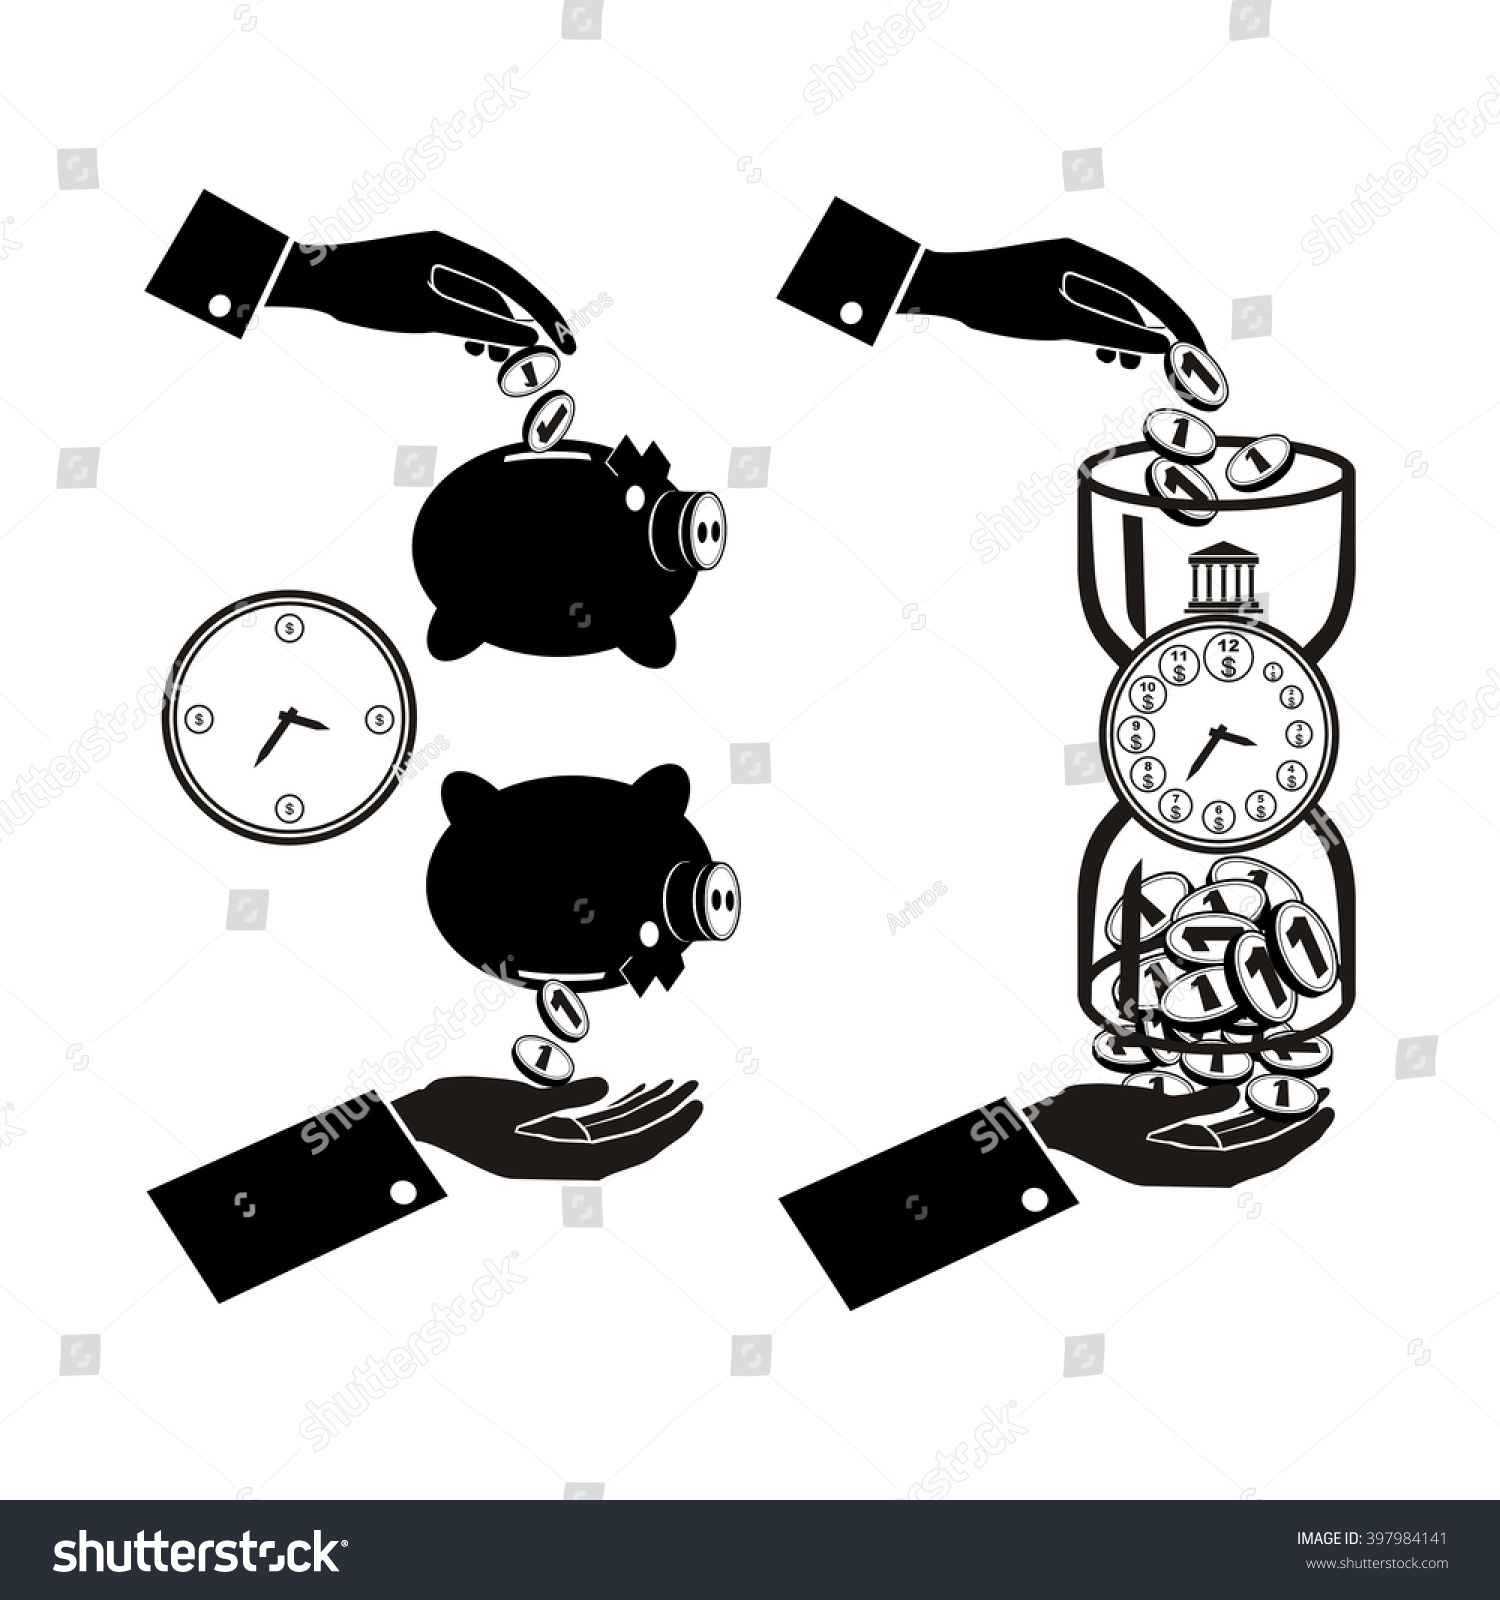 Banking symbol bank symbol pension fund stock vector 397984141 banking symbol bank symbol pension fund symbol mutual fund symbol computer drawing biocorpaavc Images